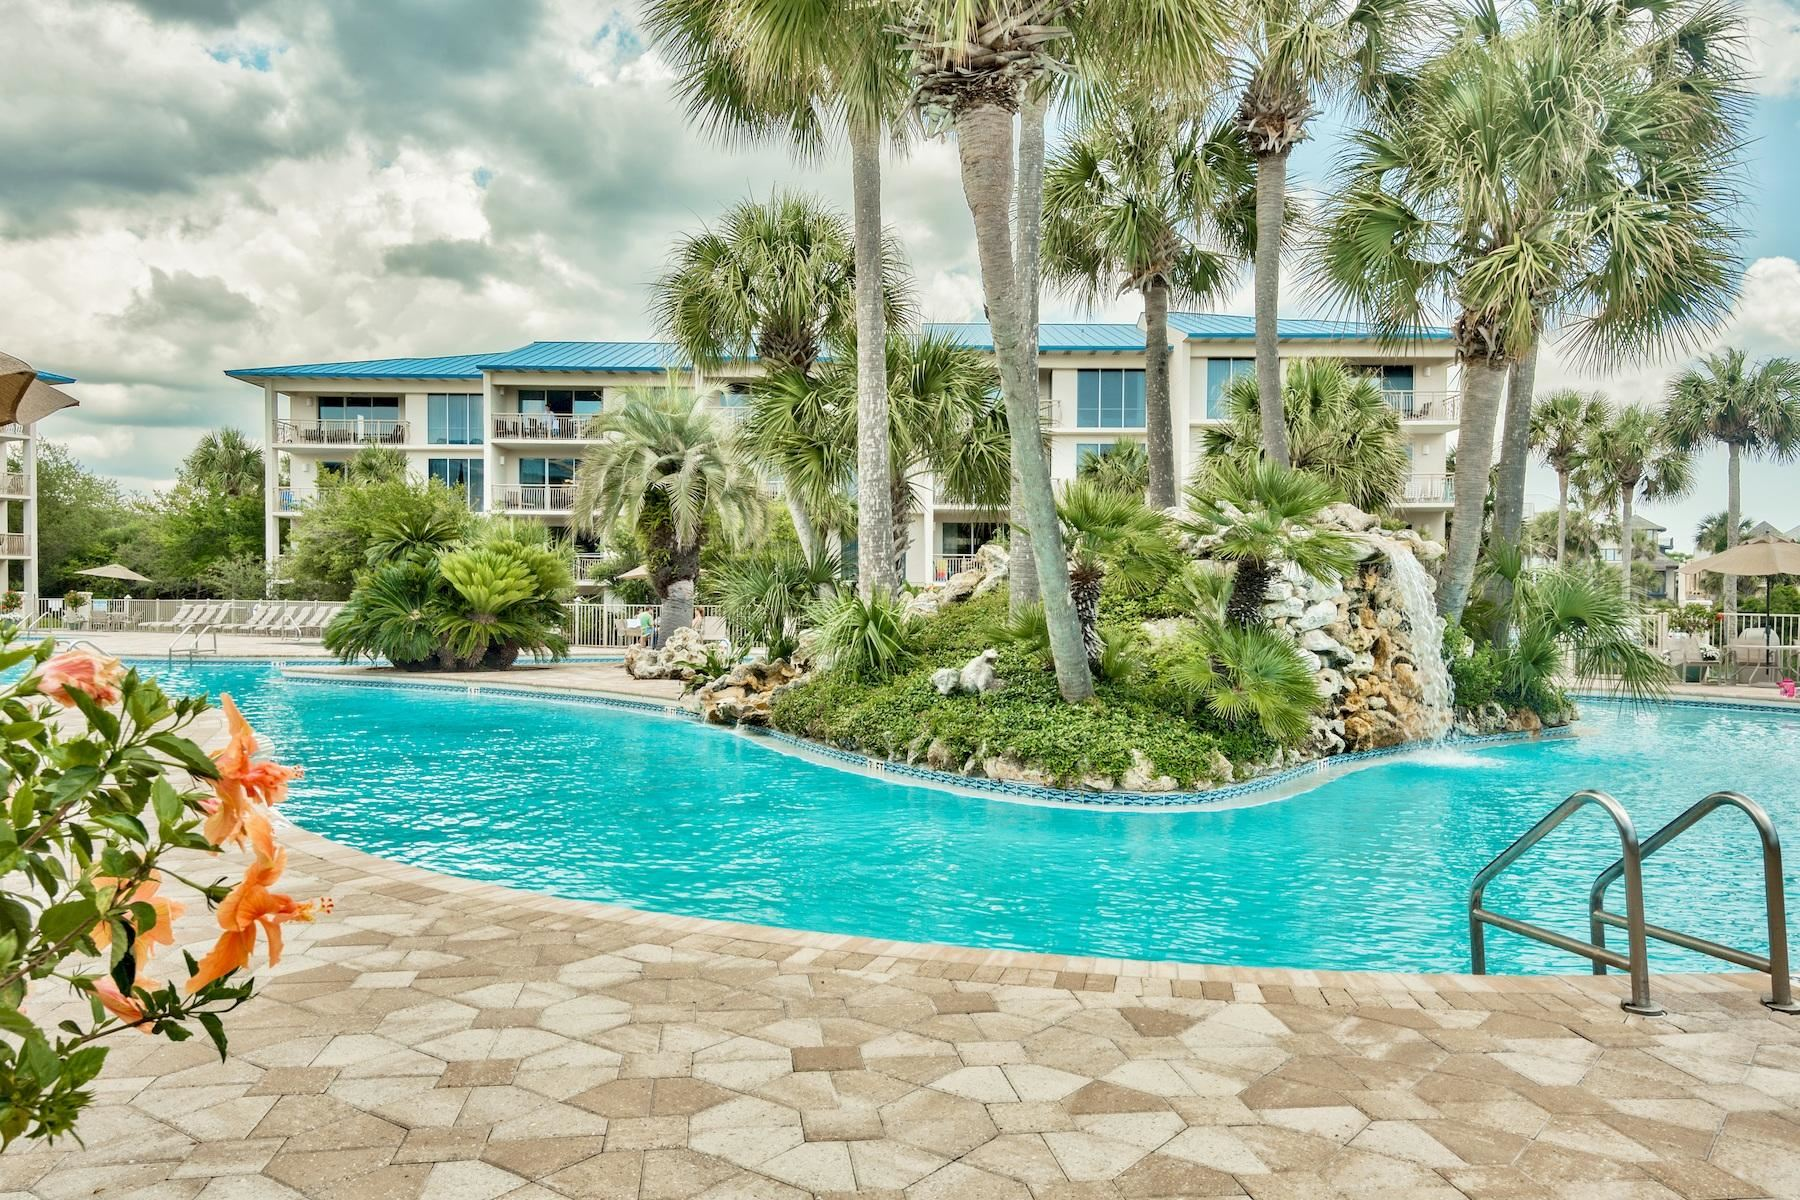 Photo for 10254 E County Road 30A #132, Seacrest, FL 32461 (MLS # 814228)